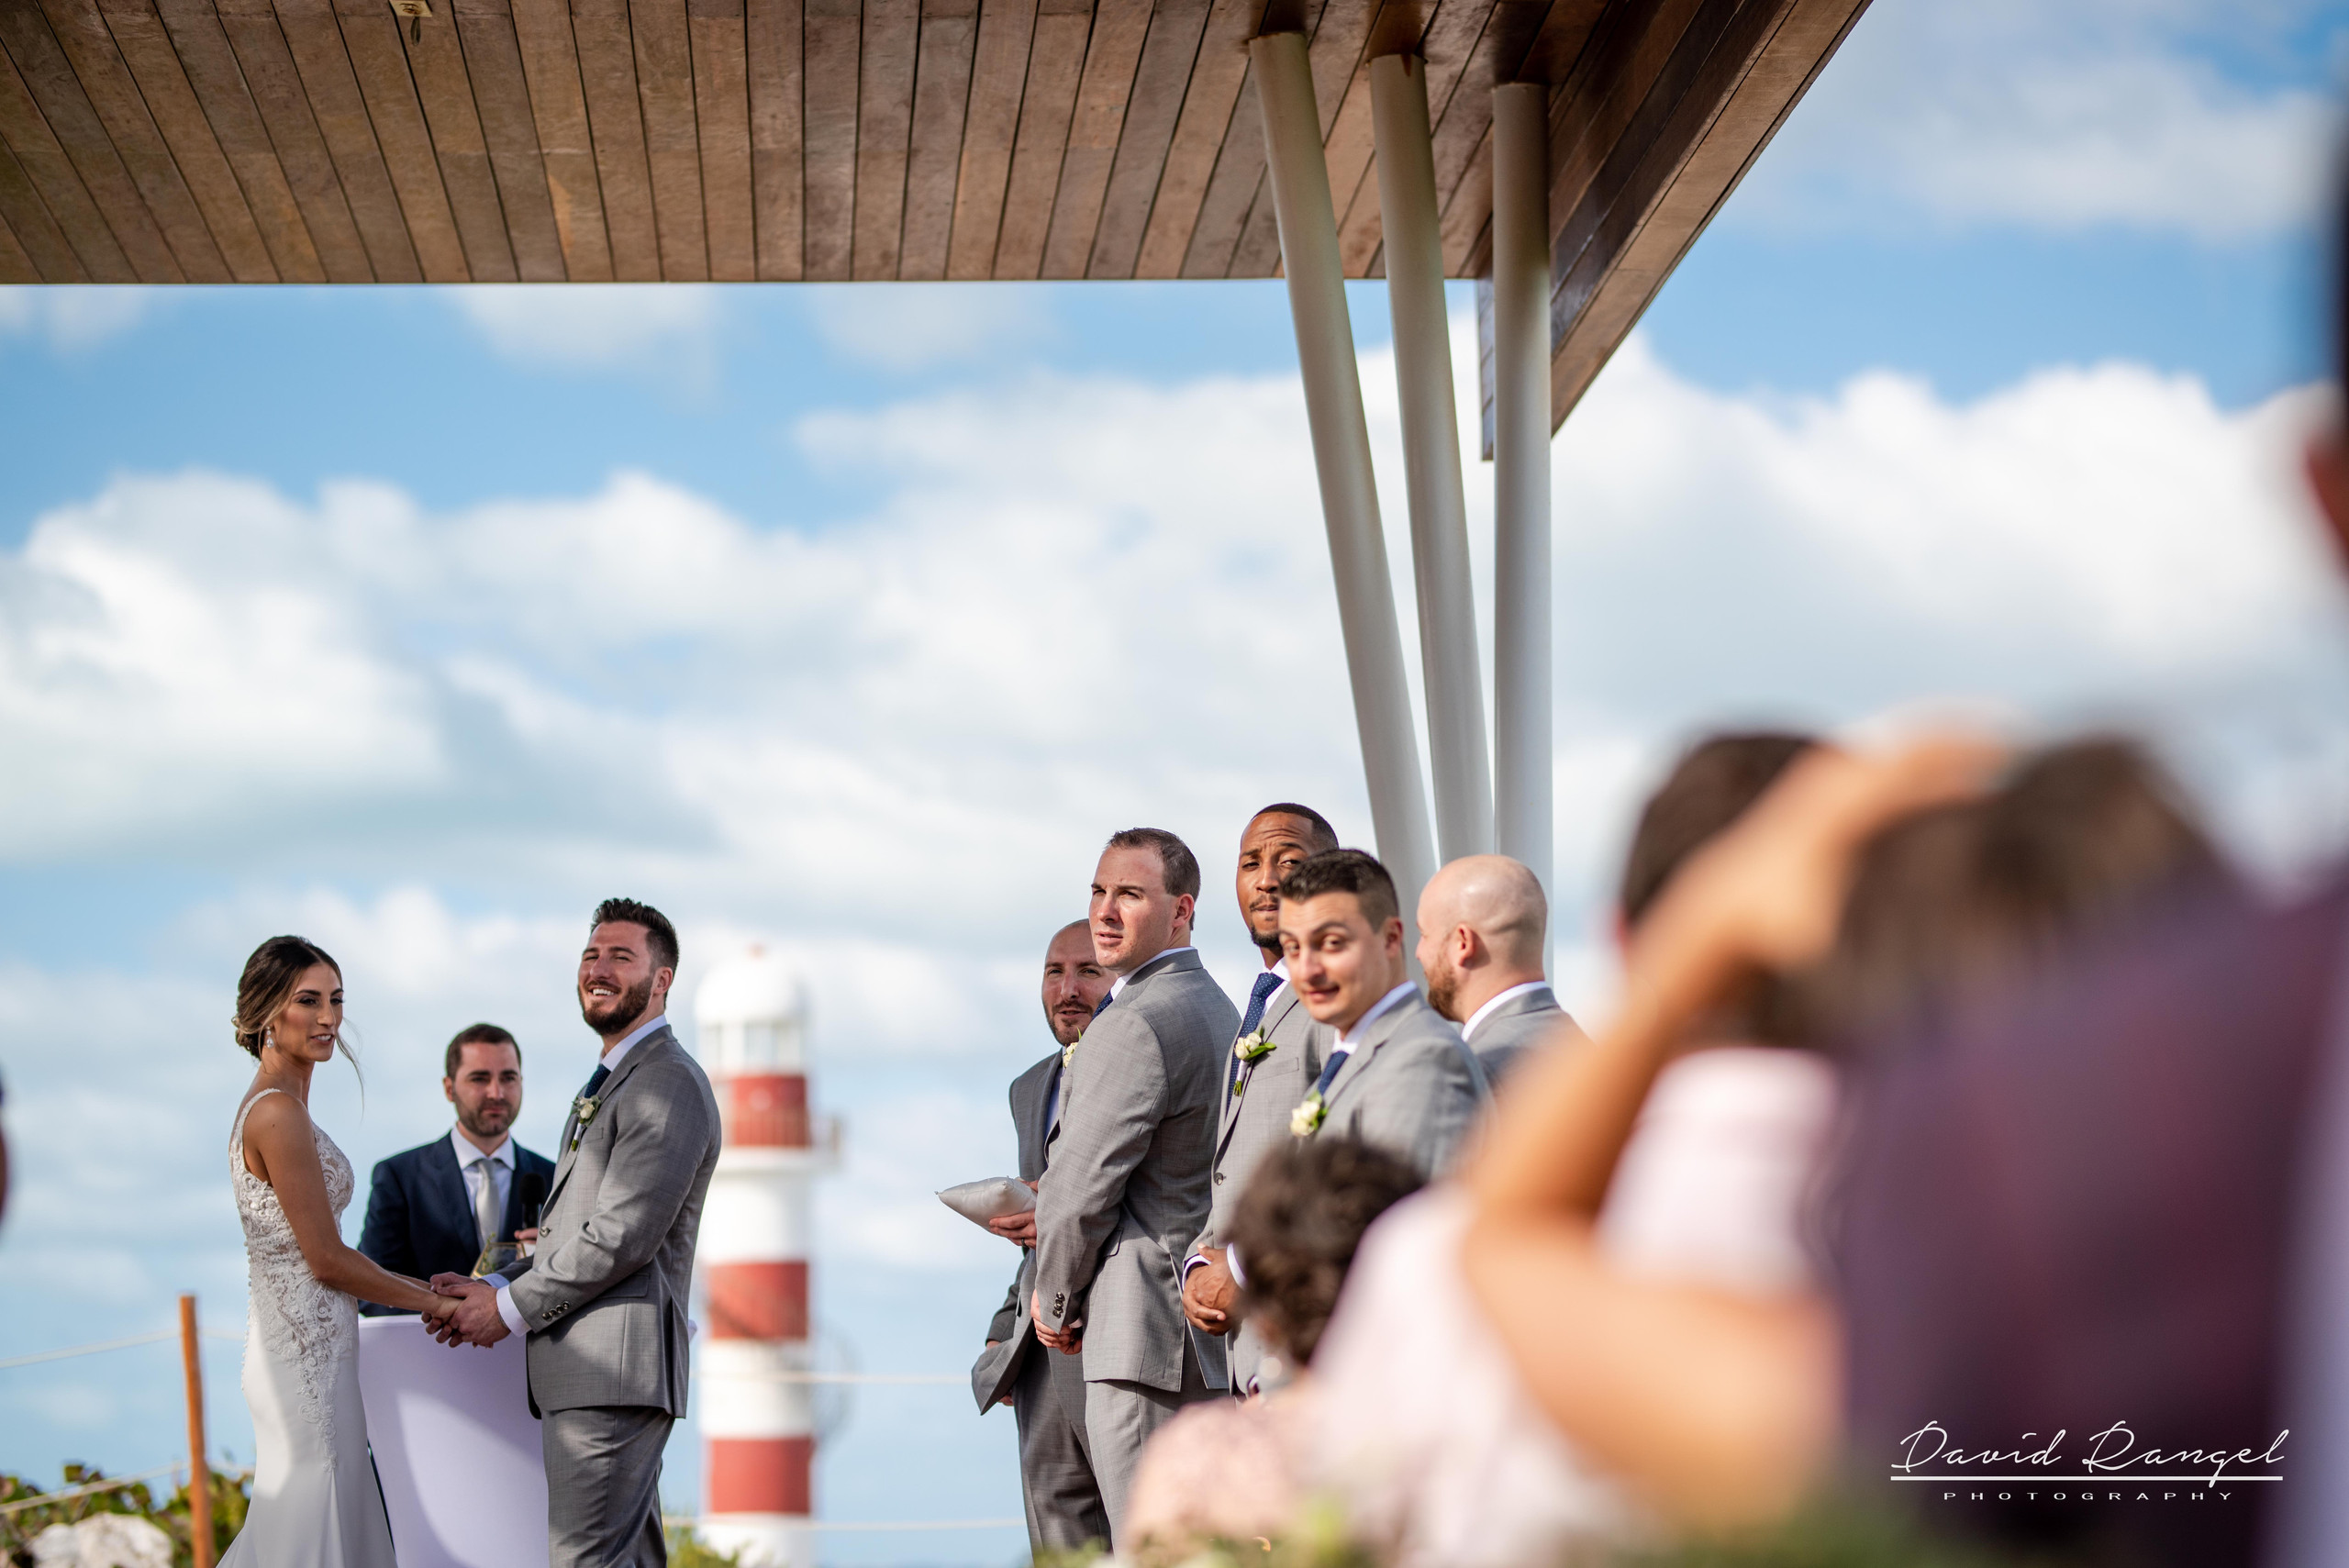 bride+groom+lighthouse+gazebo+wedding+ceremony+photo+minister